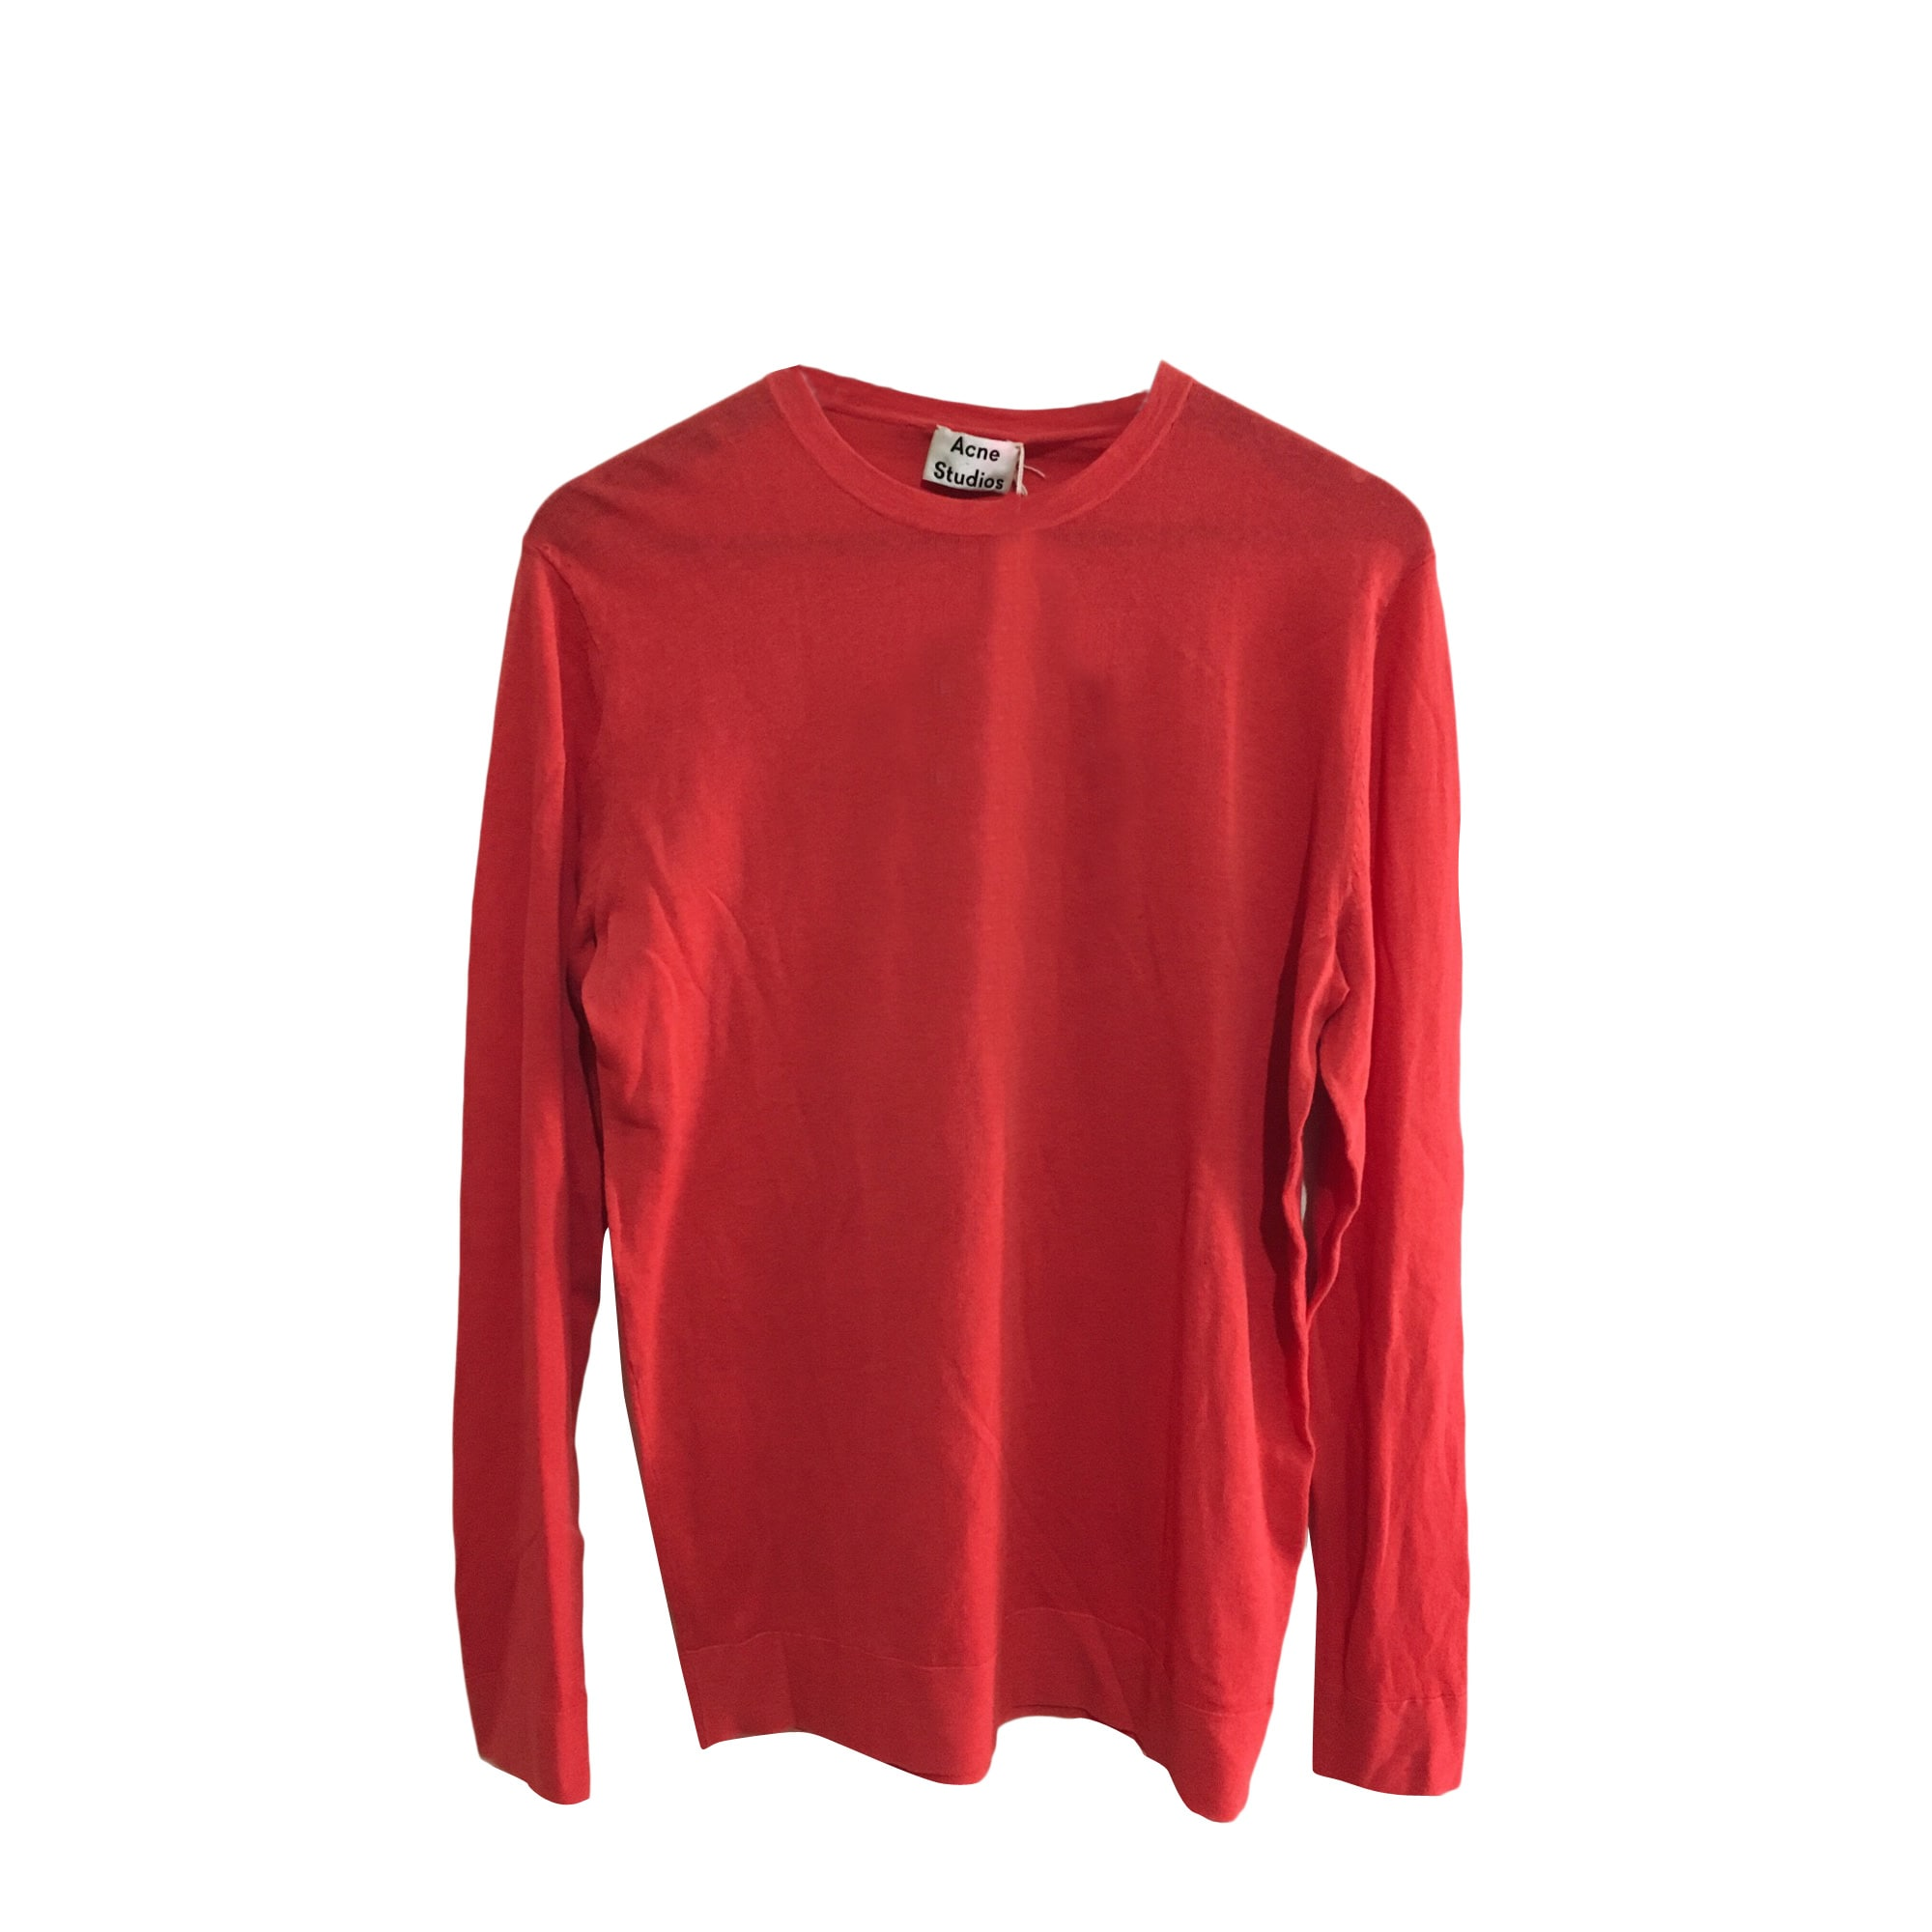 Pull ACNE Rouge, bordeaux